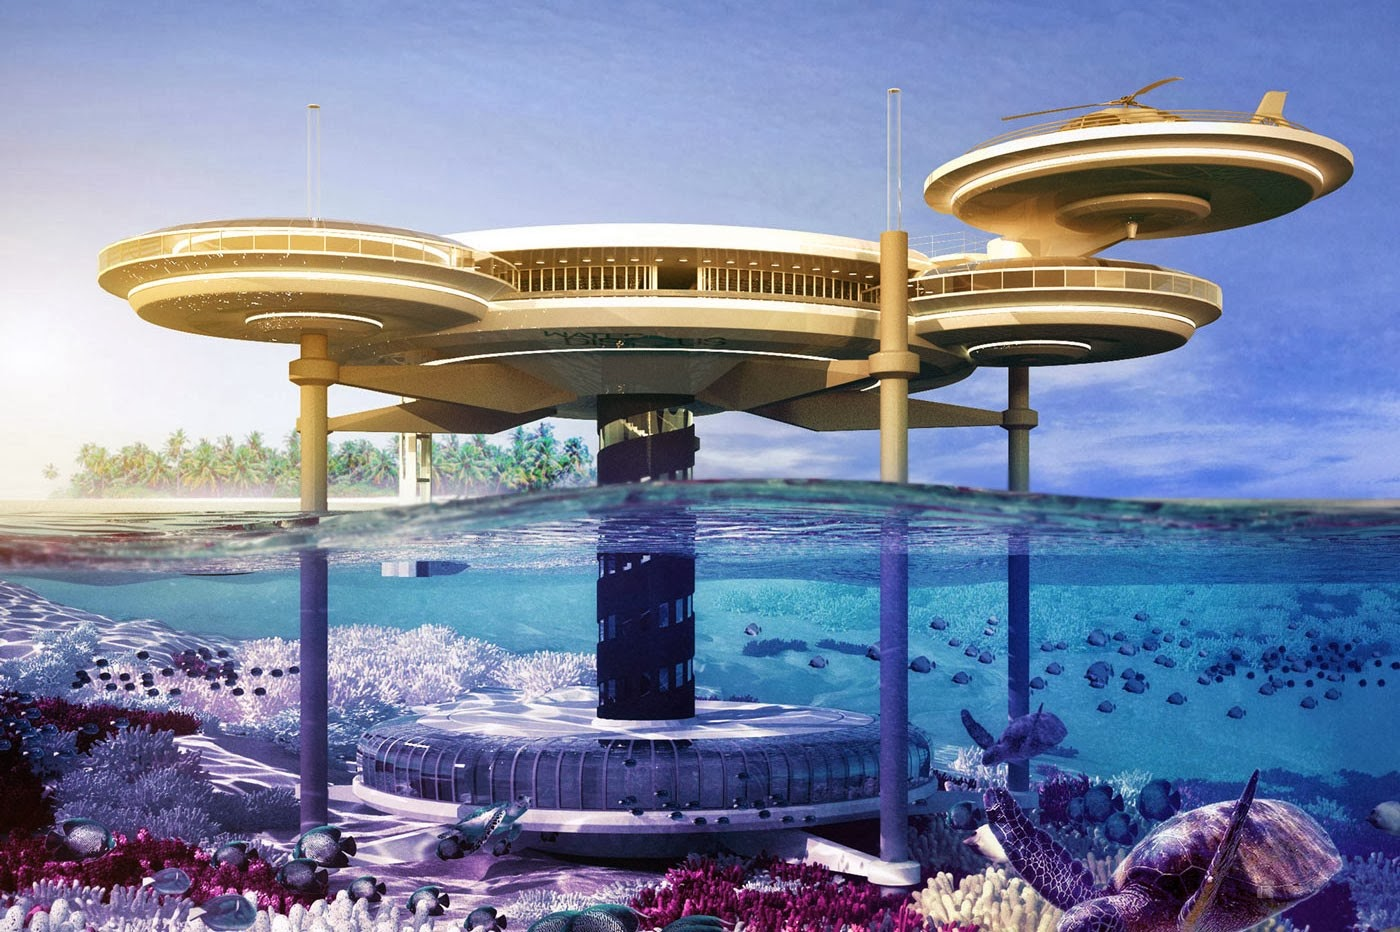 Travel Trip Journey: Hydropolis Underwater Hotel, Dubai